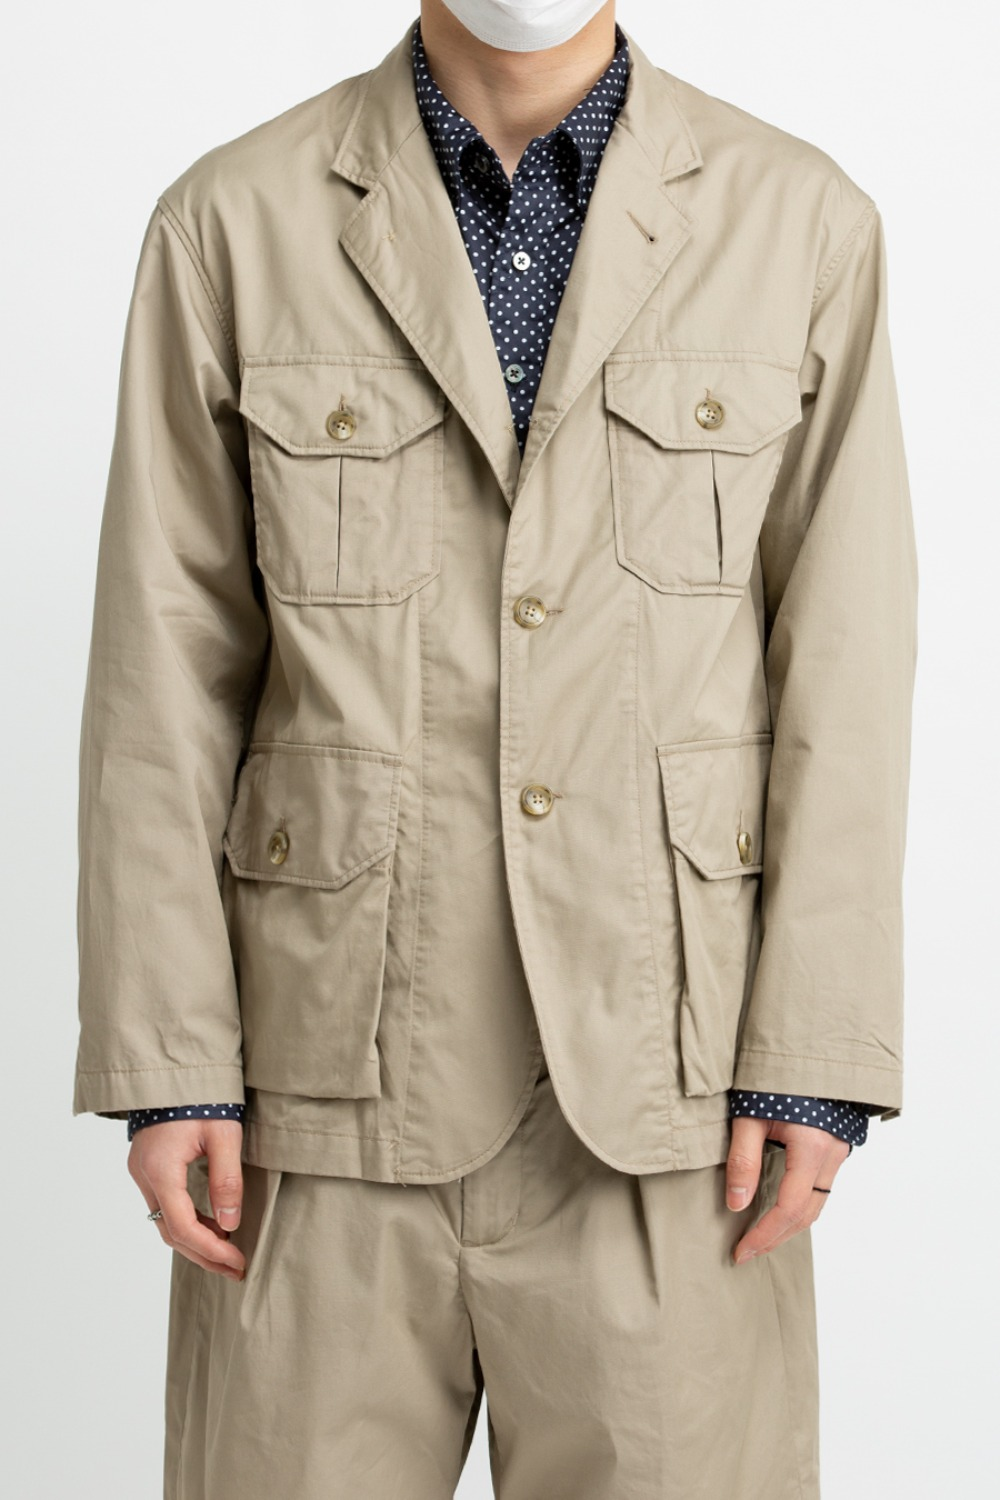 FOLK JACKET HIGH COUNT TWILL KHAKI